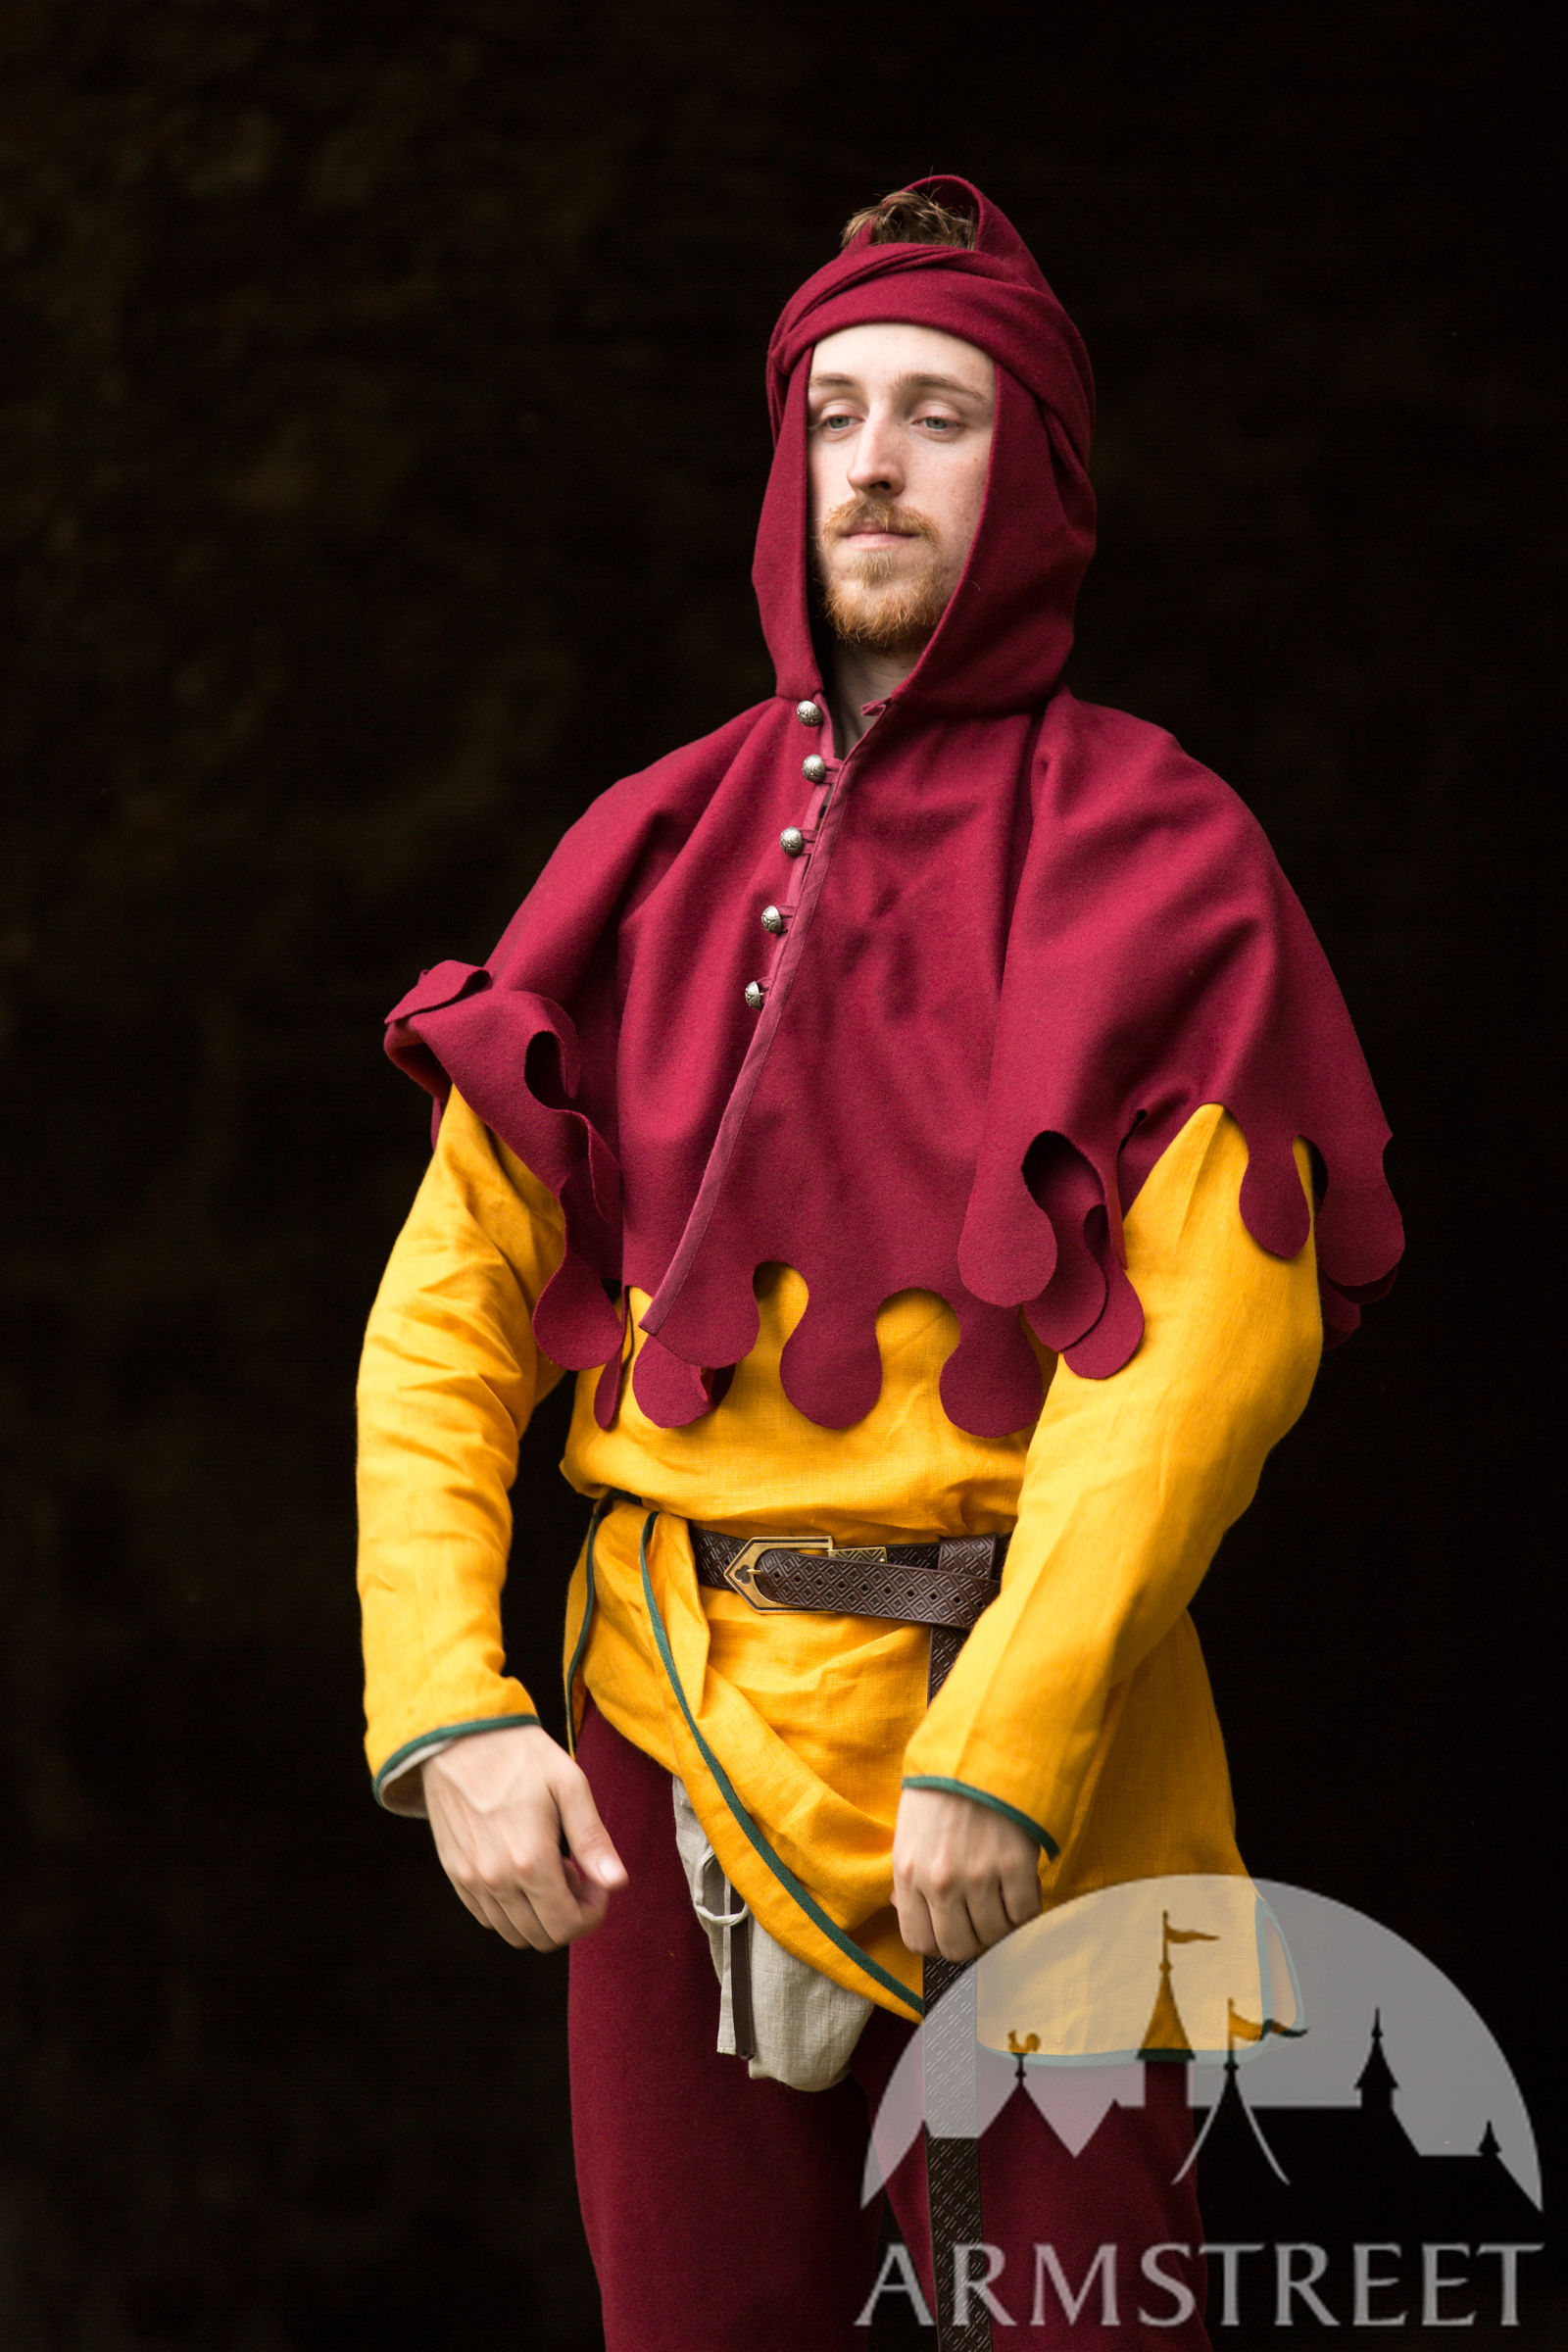 Medieval Woolen Hood Armor Bearer for Sale Available in